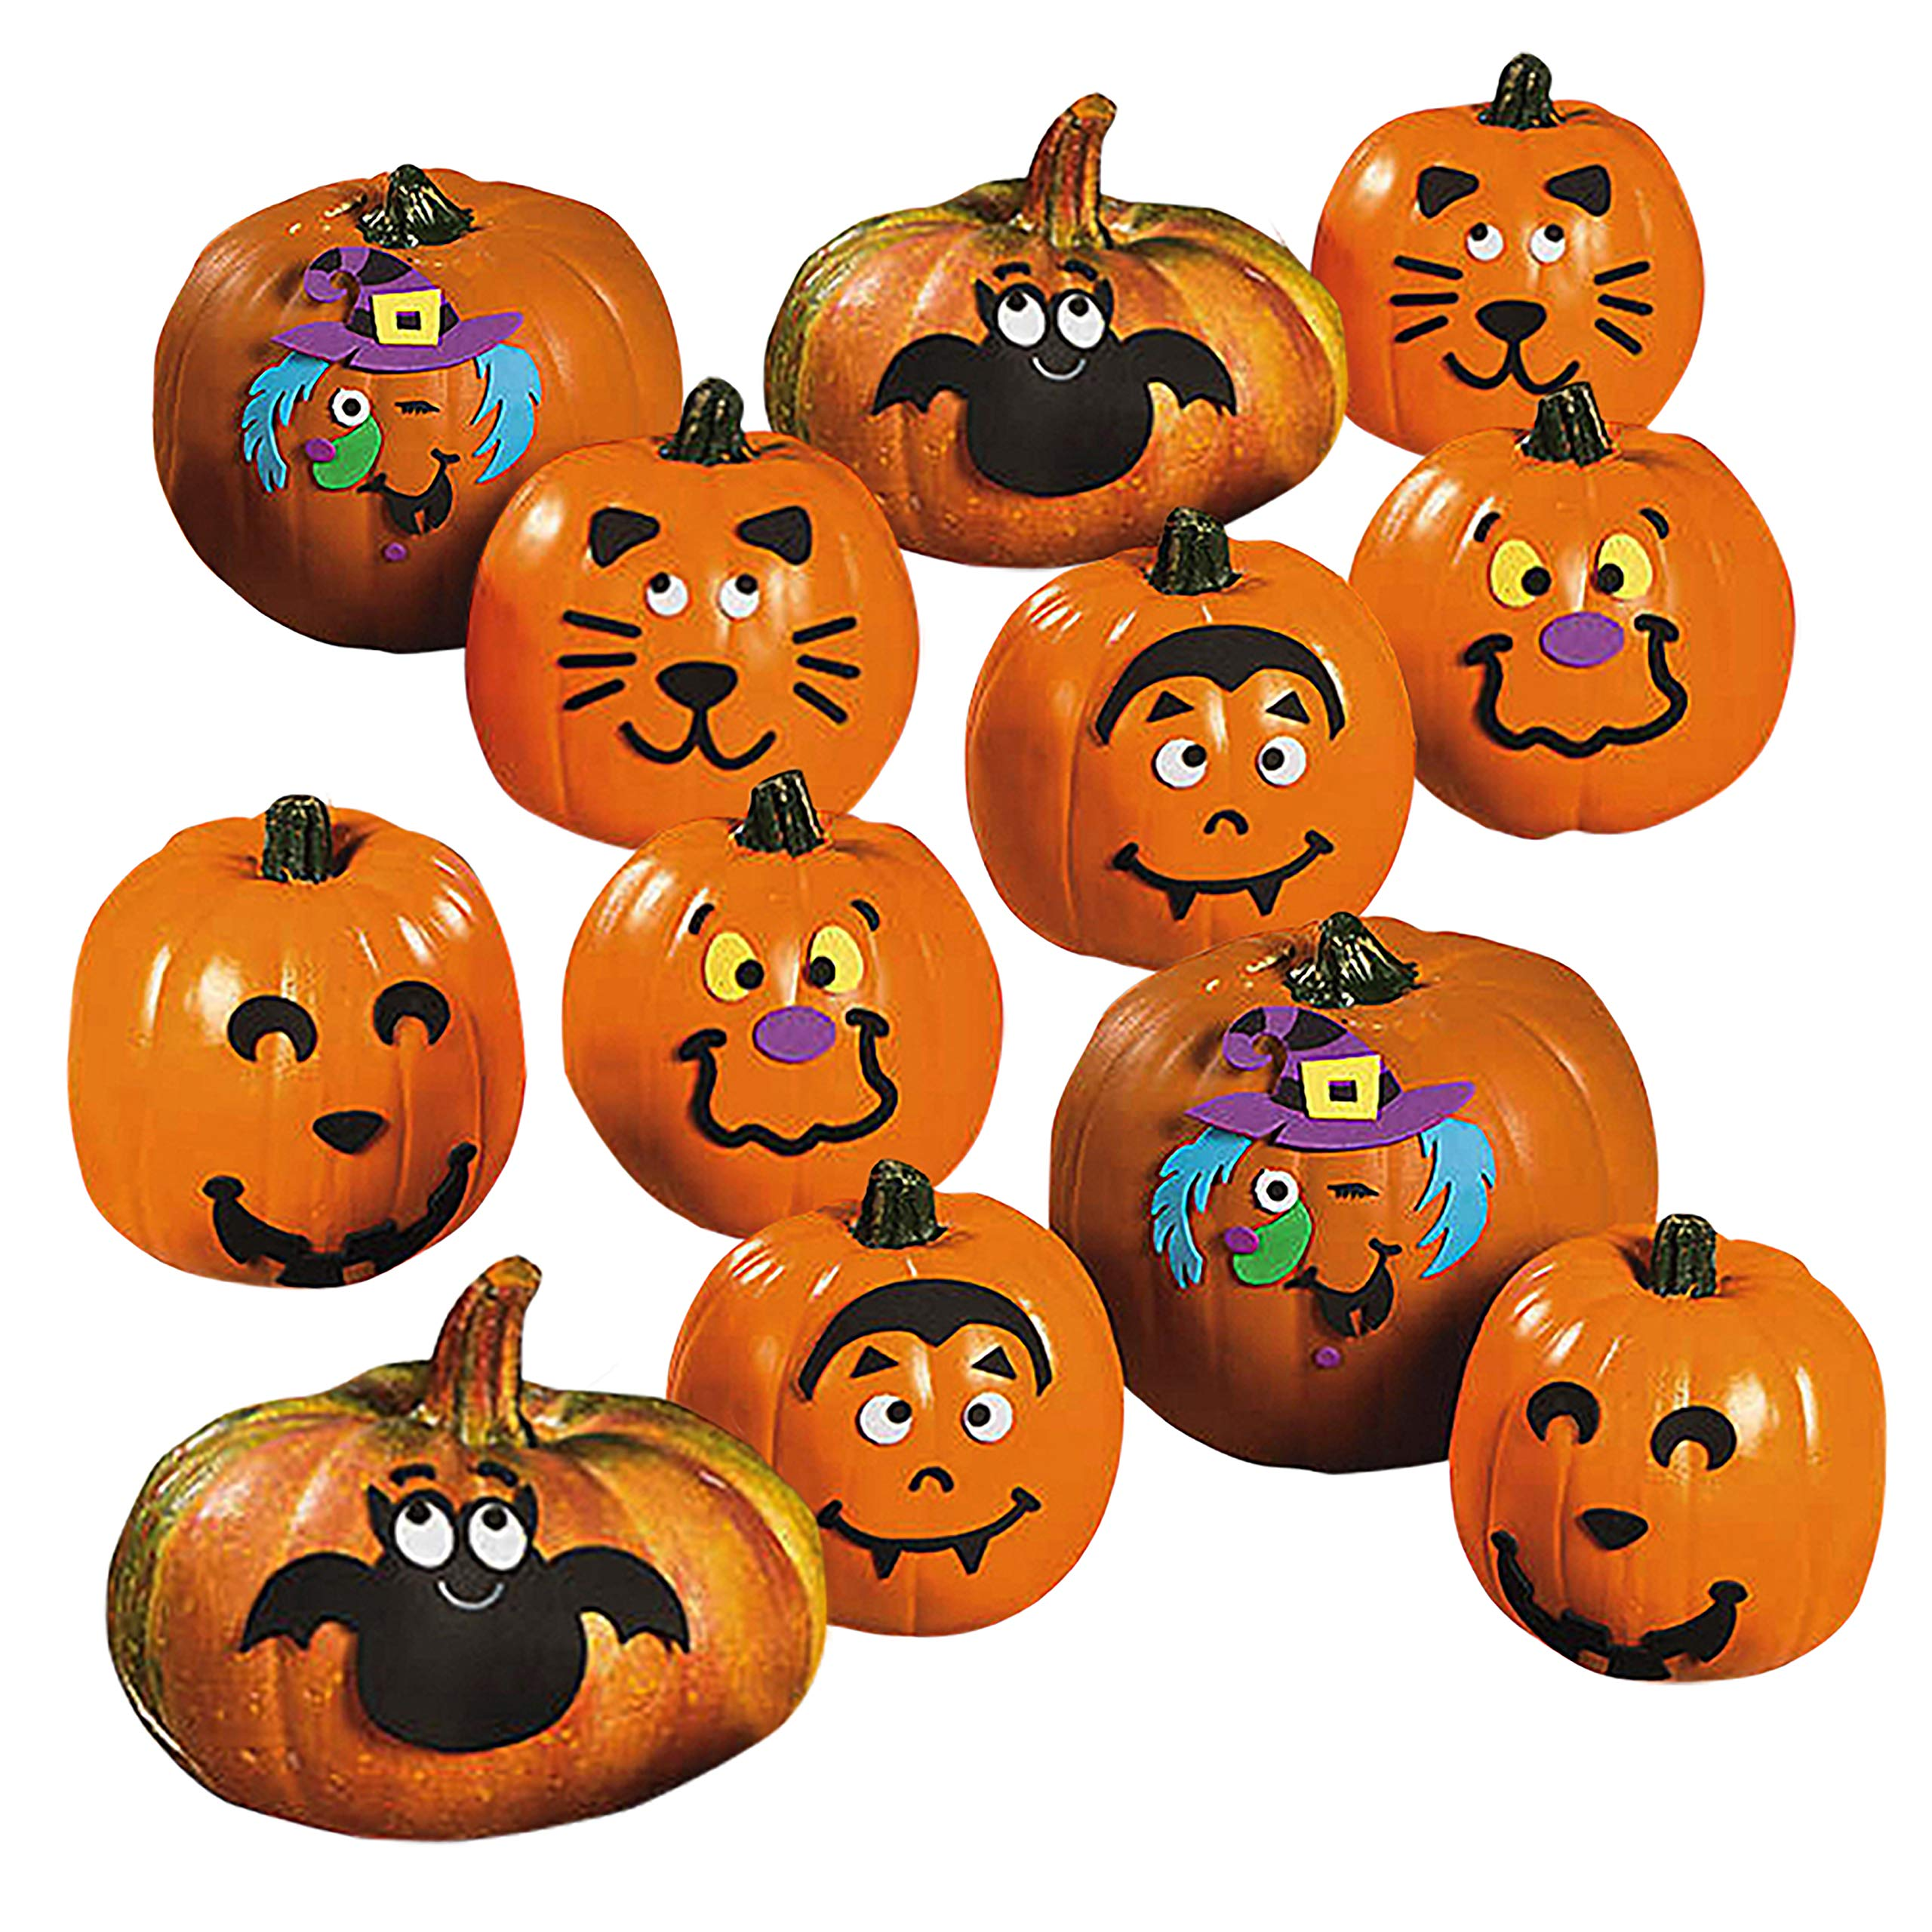 Foam Pumpkin Decorating Kits - Set of 24 Halloween Crafts for Kids by 18th Street Party Supplies (Image #1)